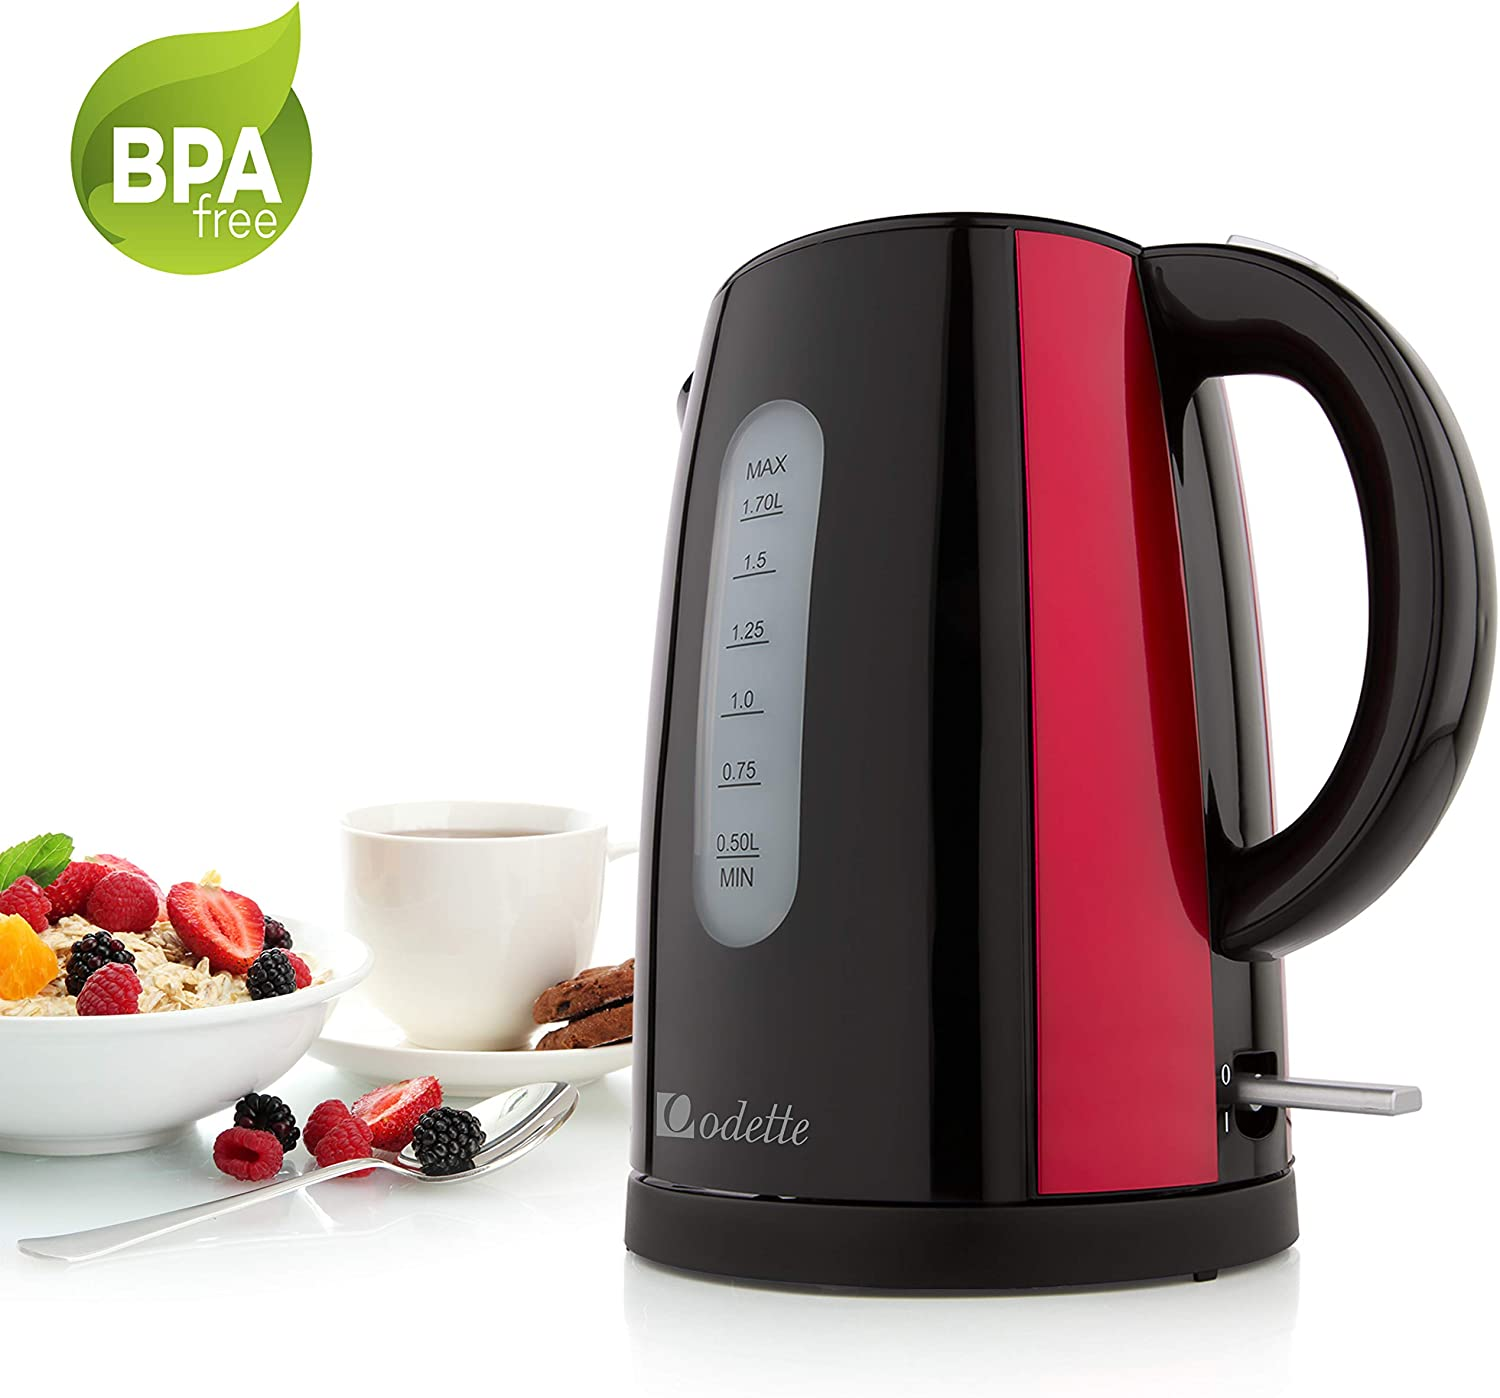 Odette Fast Boil 7 Cup 1.7 Liter BPA-Free Cordless Black and Red Electric Kettle with Auto Shut Off, Boil Dry Protection and Double Layer Handle for Cool Touch